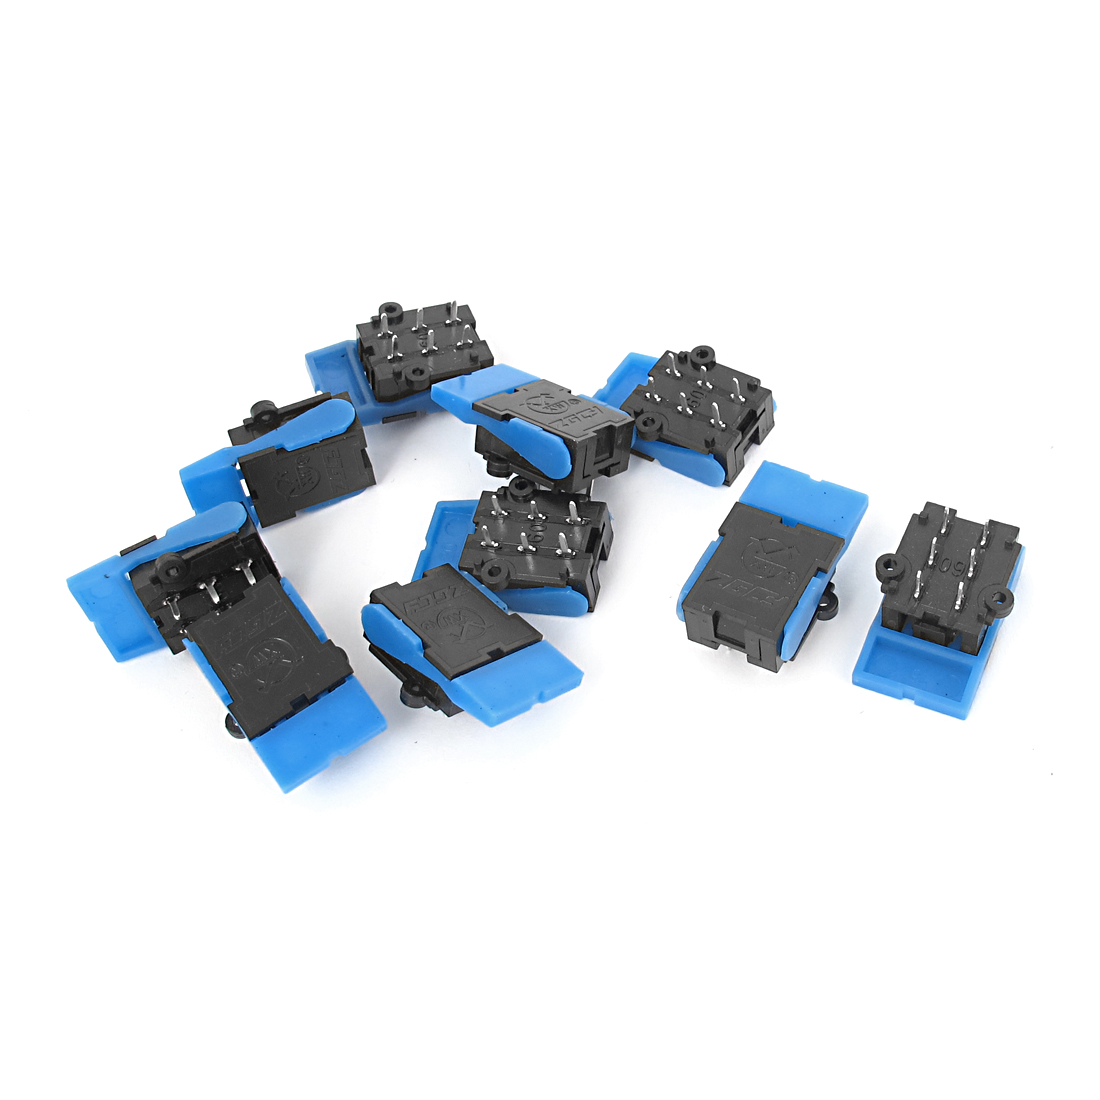 10 Pcs 6 Pin PCB Mount Telephone Silence Hook Switch Black Blue